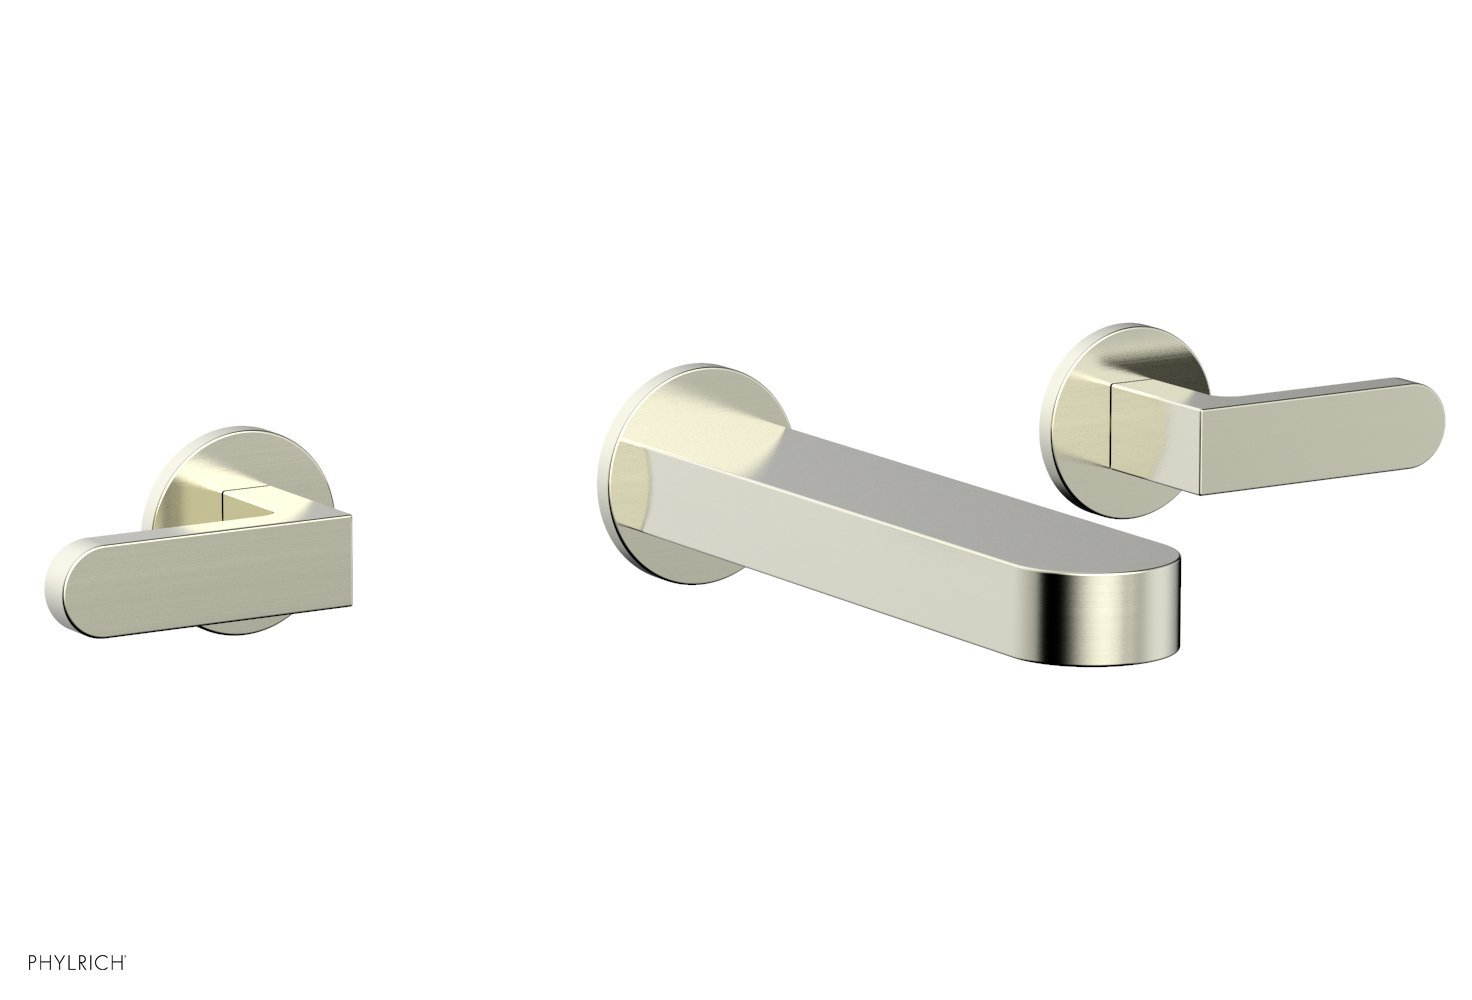 Phylrich 183-12-015 ROND Wall Lavatory Set - Lever Handles - Satin Nickel